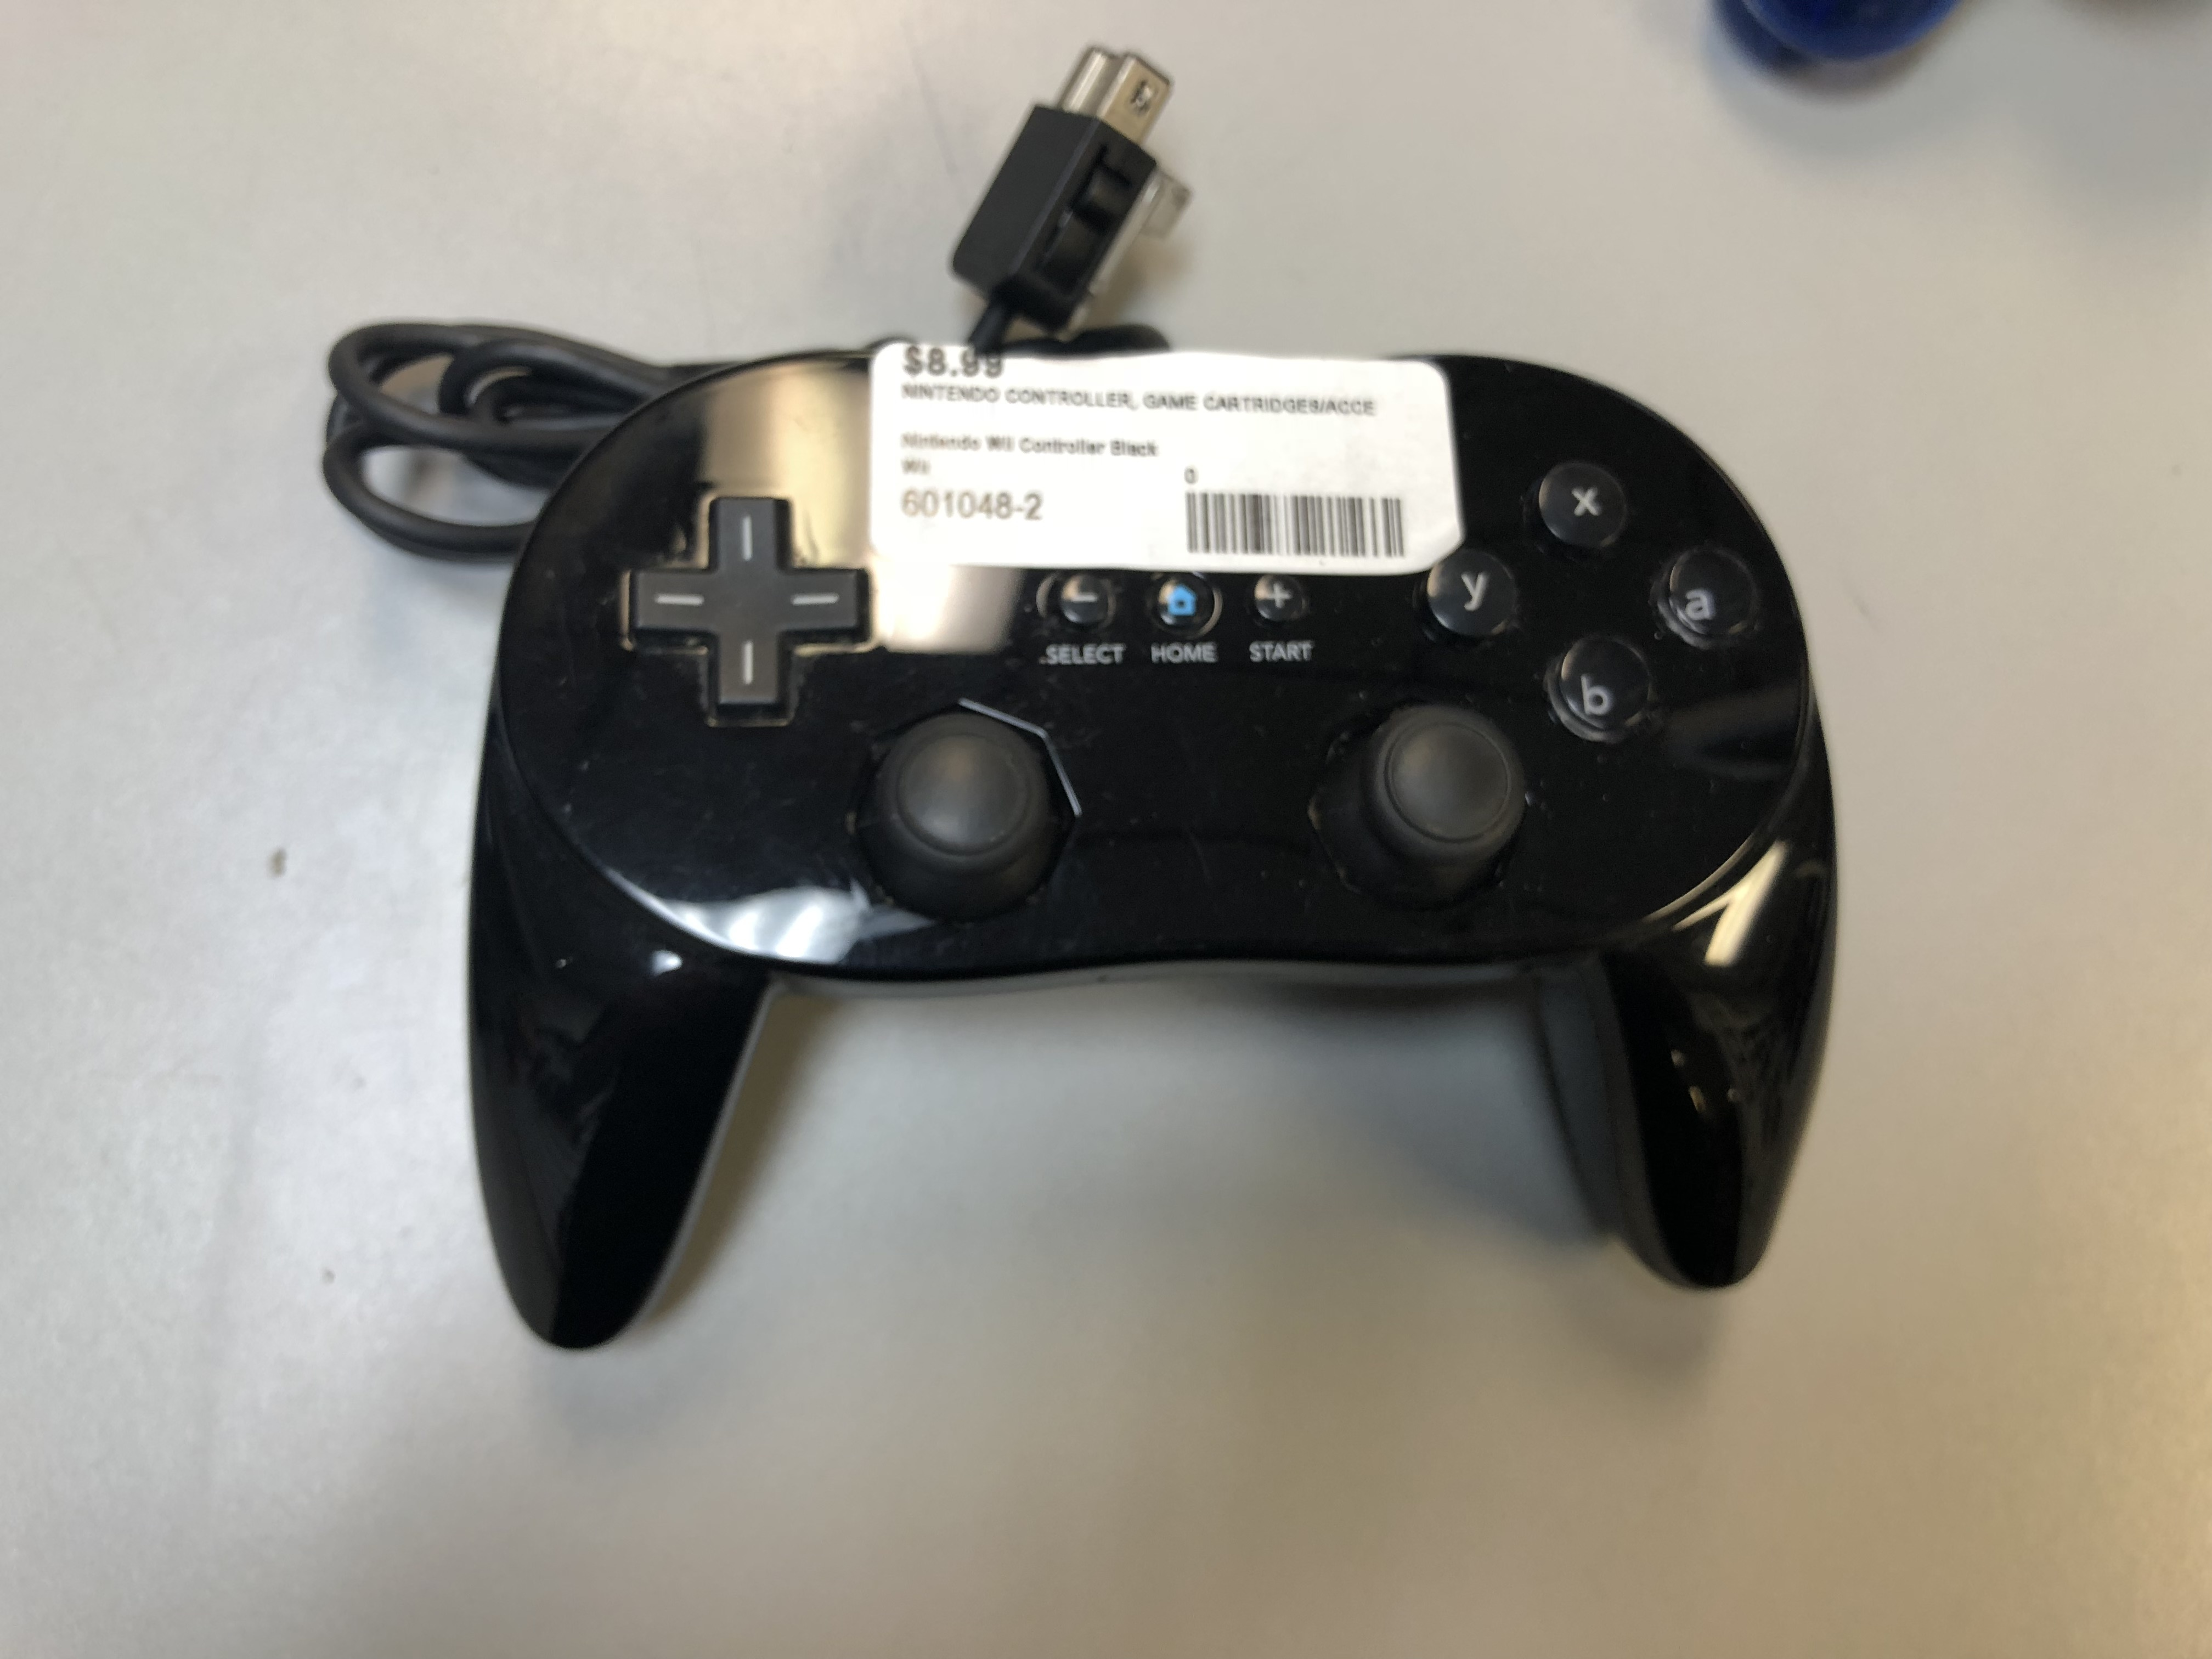 -  - CONTROLLER GAME CARTRIDGES/ACCE